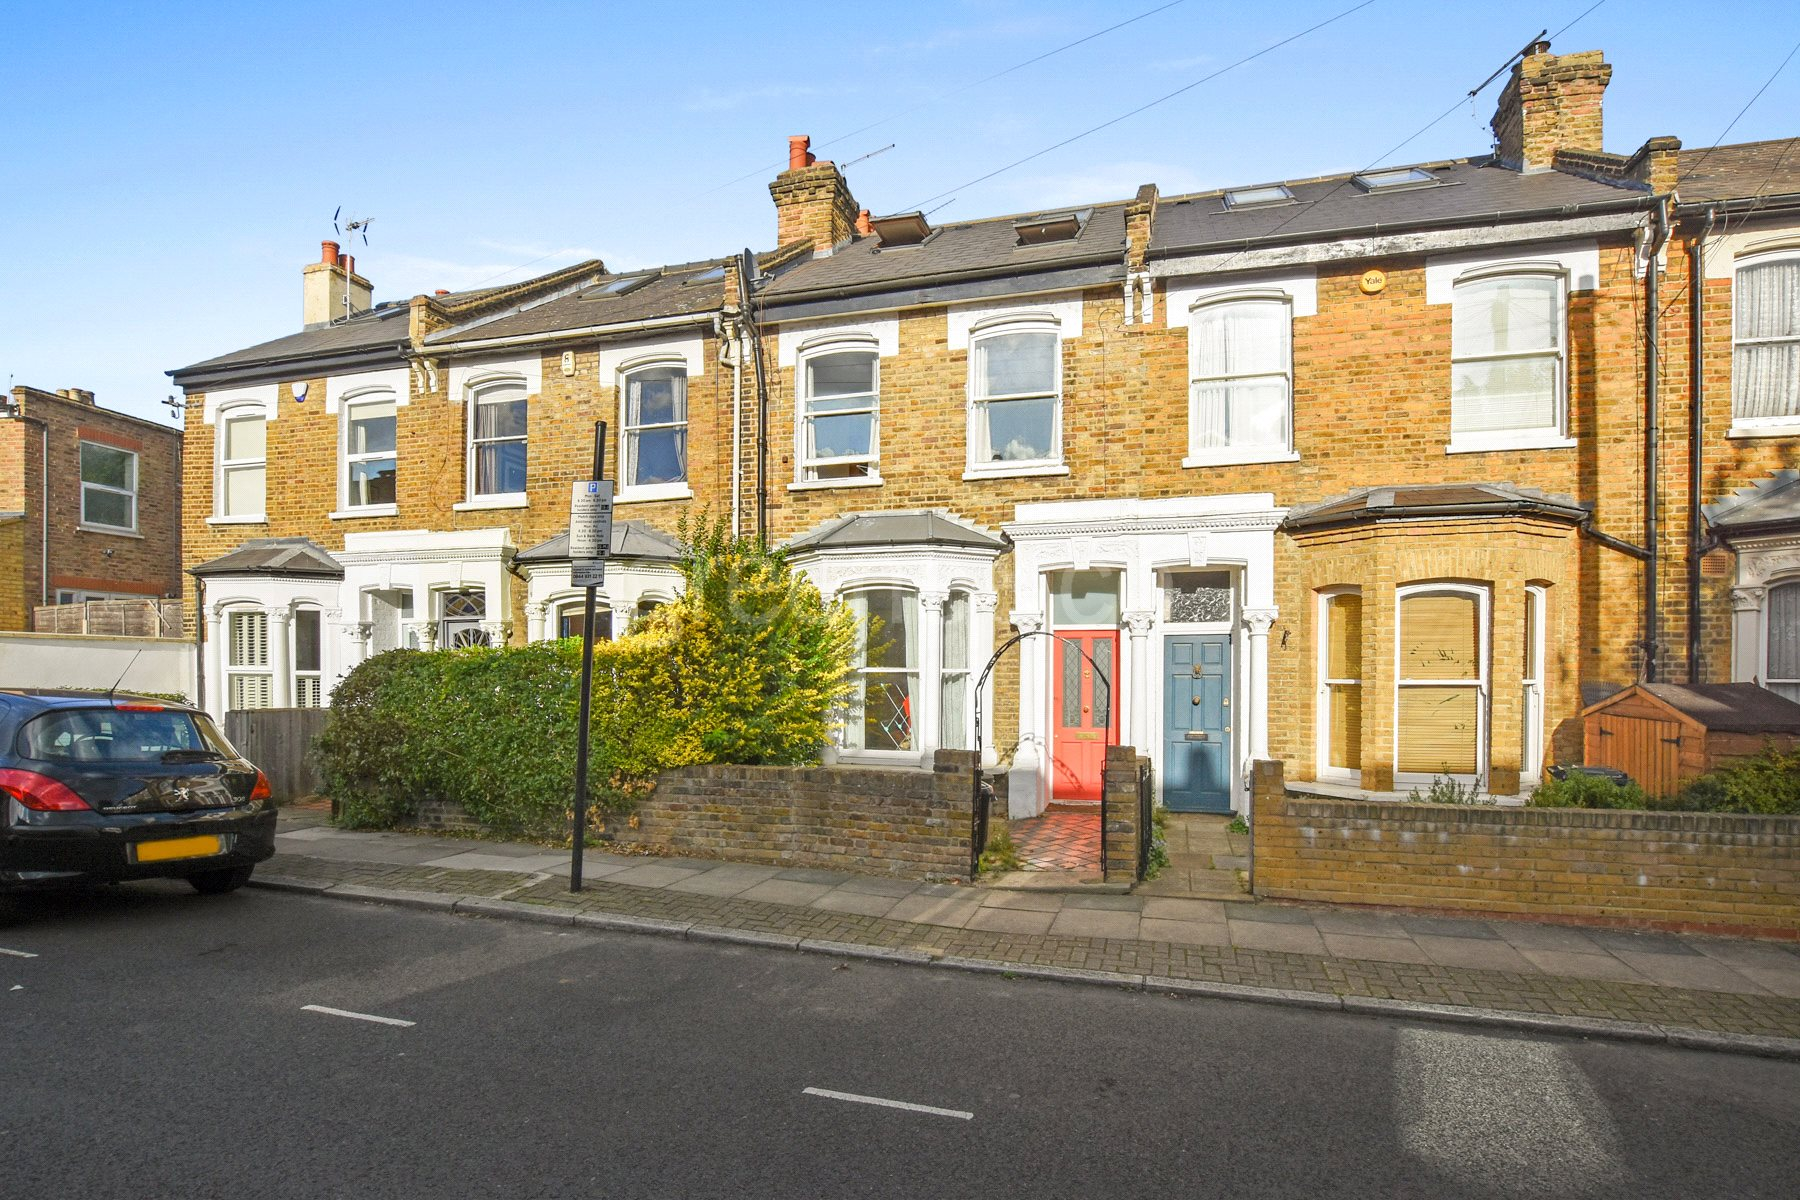 3 Bedrooms Terraced House for sale in Bracey Street, Stroud Green, London, N4